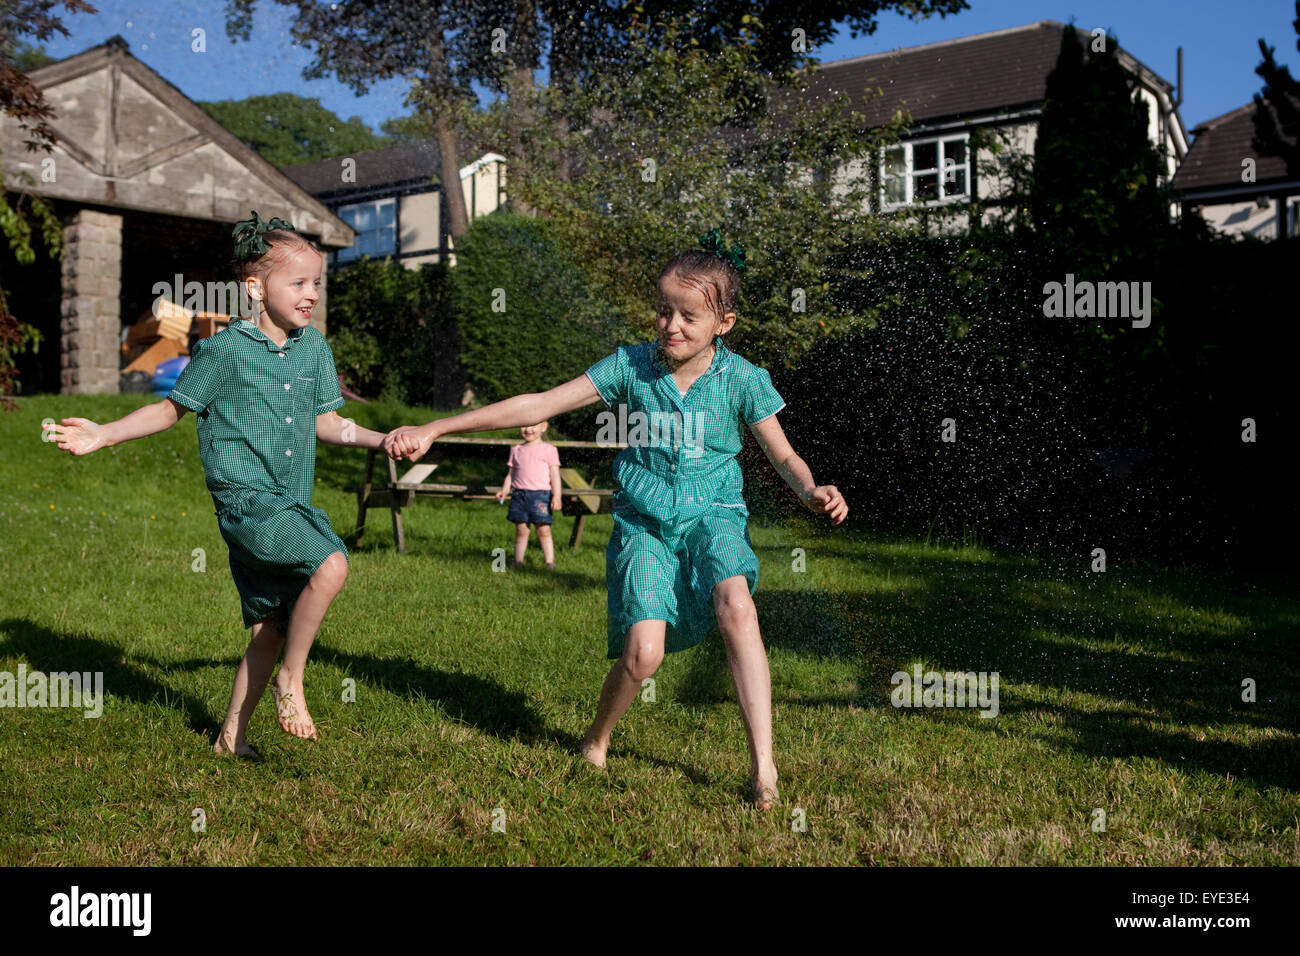 Two children in school dresses running through a water sprinkler. - Stock Image